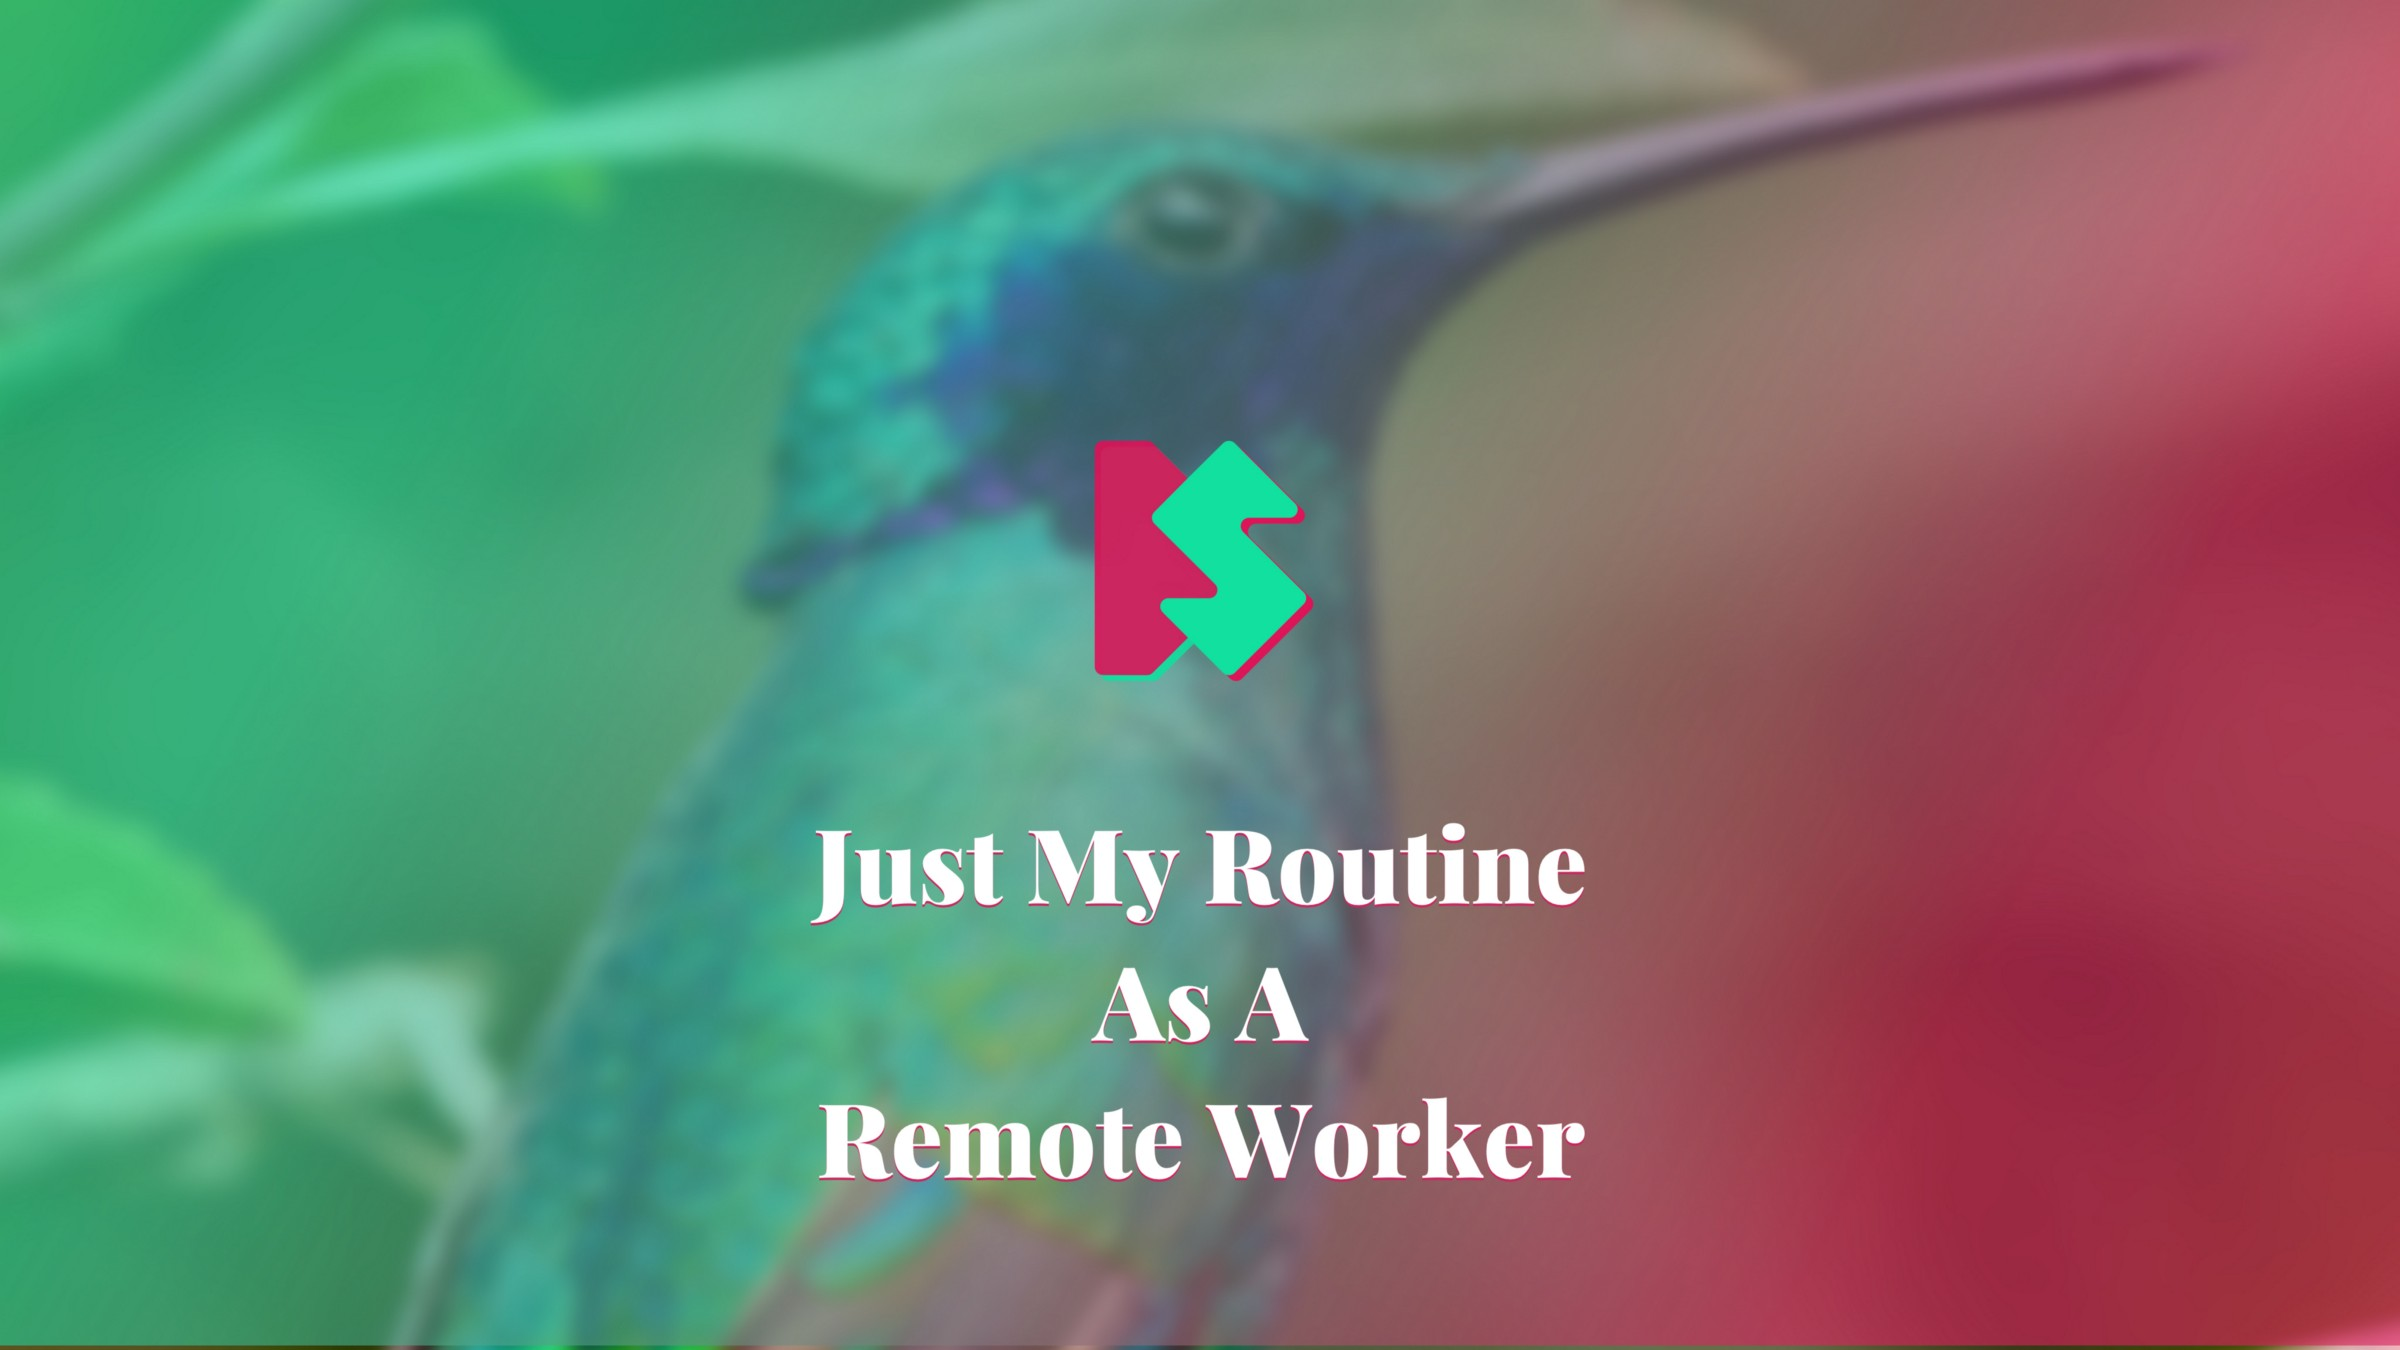 /the-typical-routine-of-this-remote-worker-3a2a25f50cc5 feature image